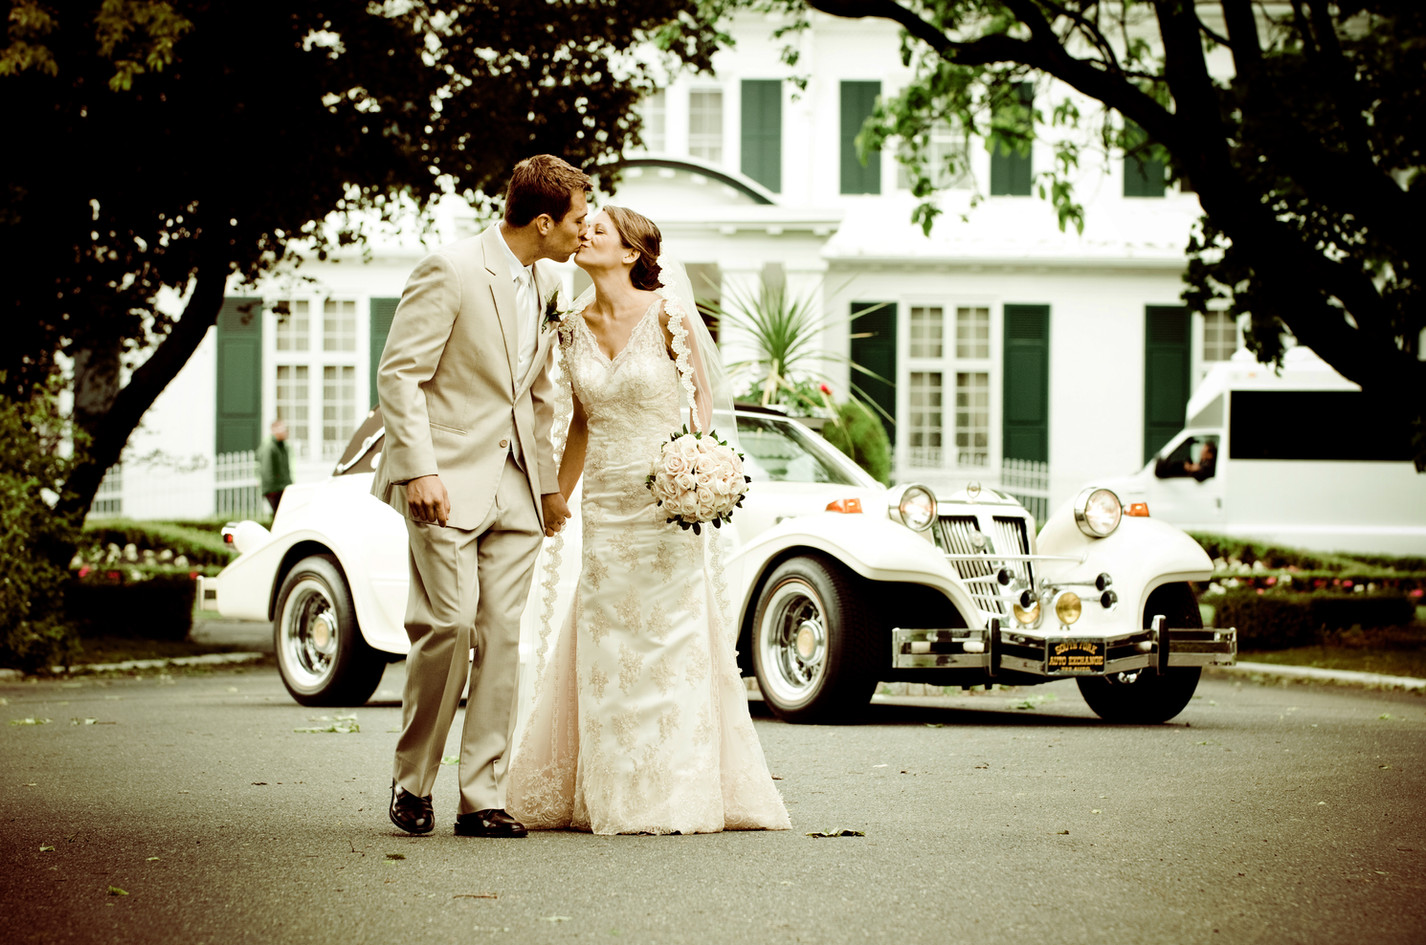 #NJwedding photo at The Shadowbrook in Shrewsbury, NJ by Abella Studios